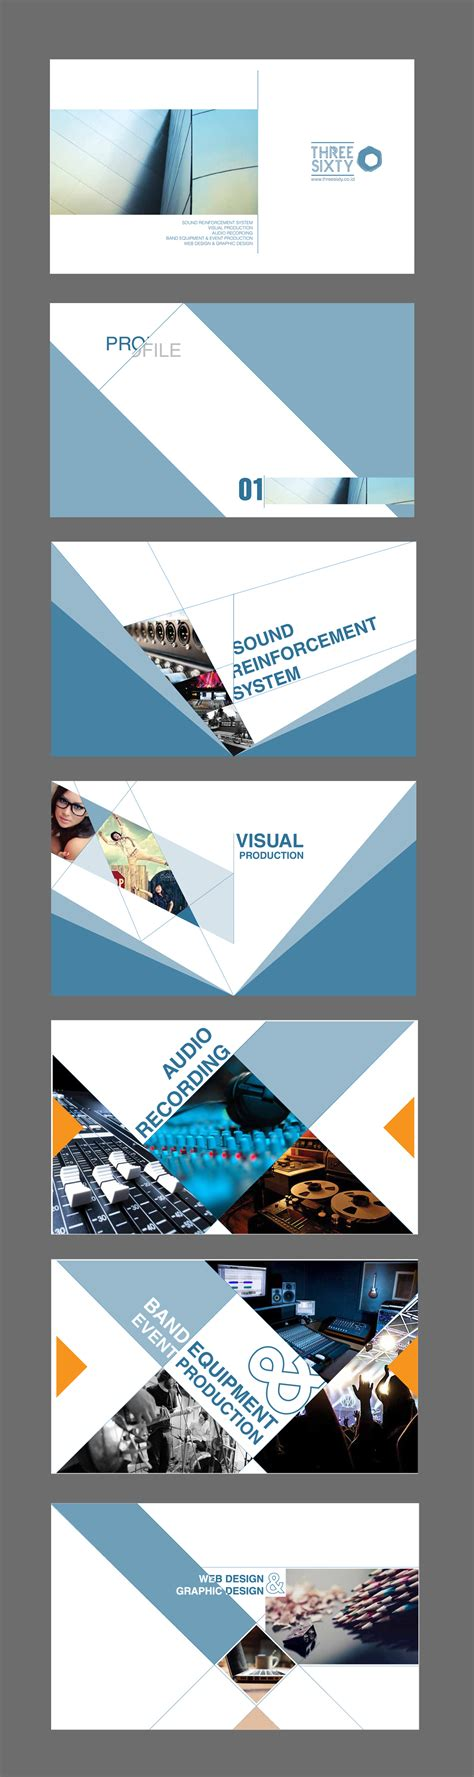 company profile layout design inspiration threesixty company profile template presentation